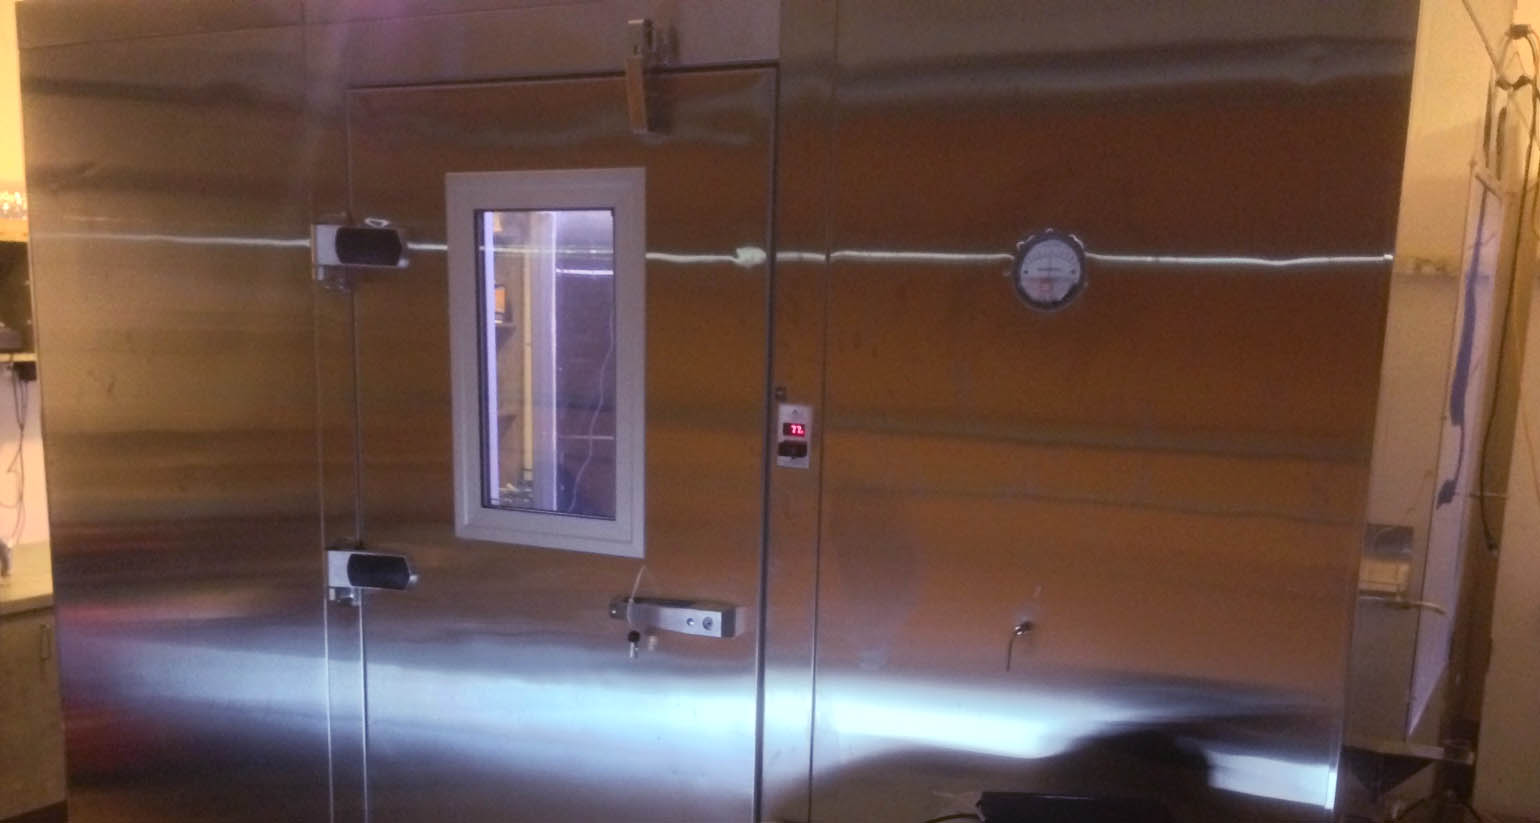 Biological Aerosol Decontamination Testing in a Sealed Room Environment